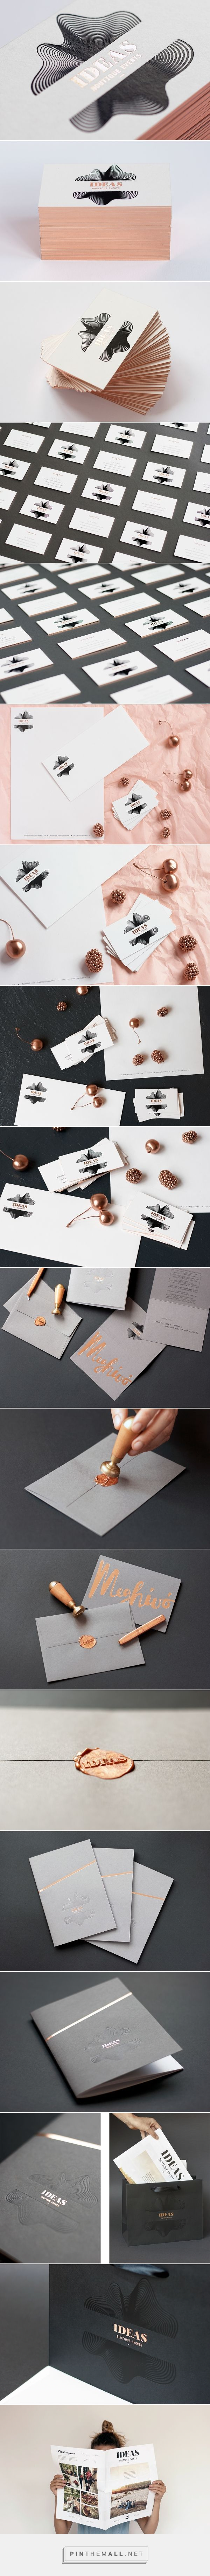 IDEAS Boutique Events brand identity on Behance // by Diana Ghyczy, Absoloot, & Nora Lugosi